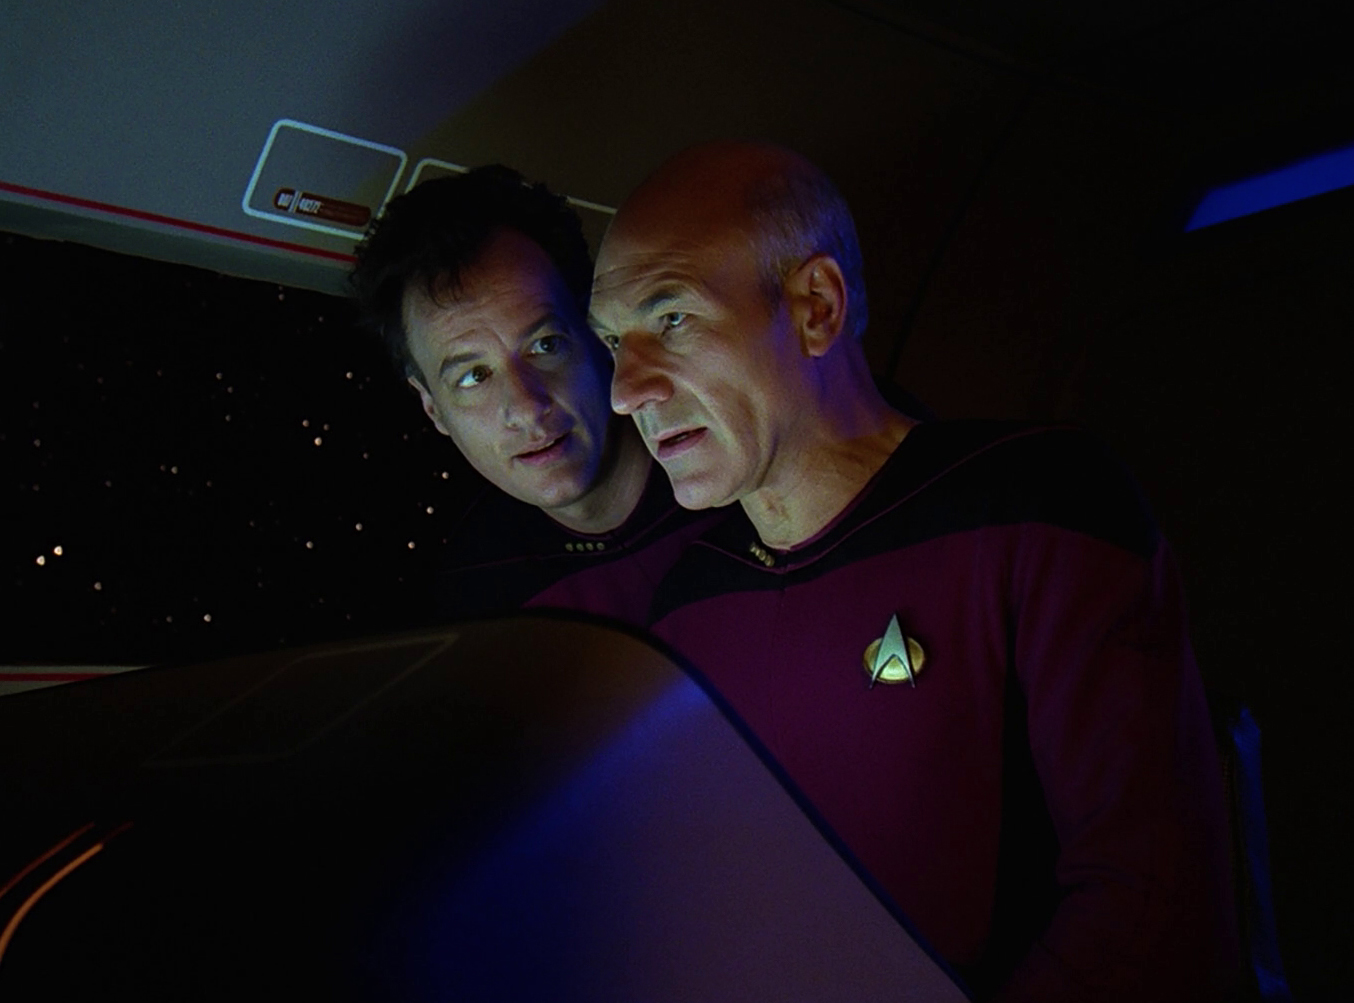 q_and_picard.jpg